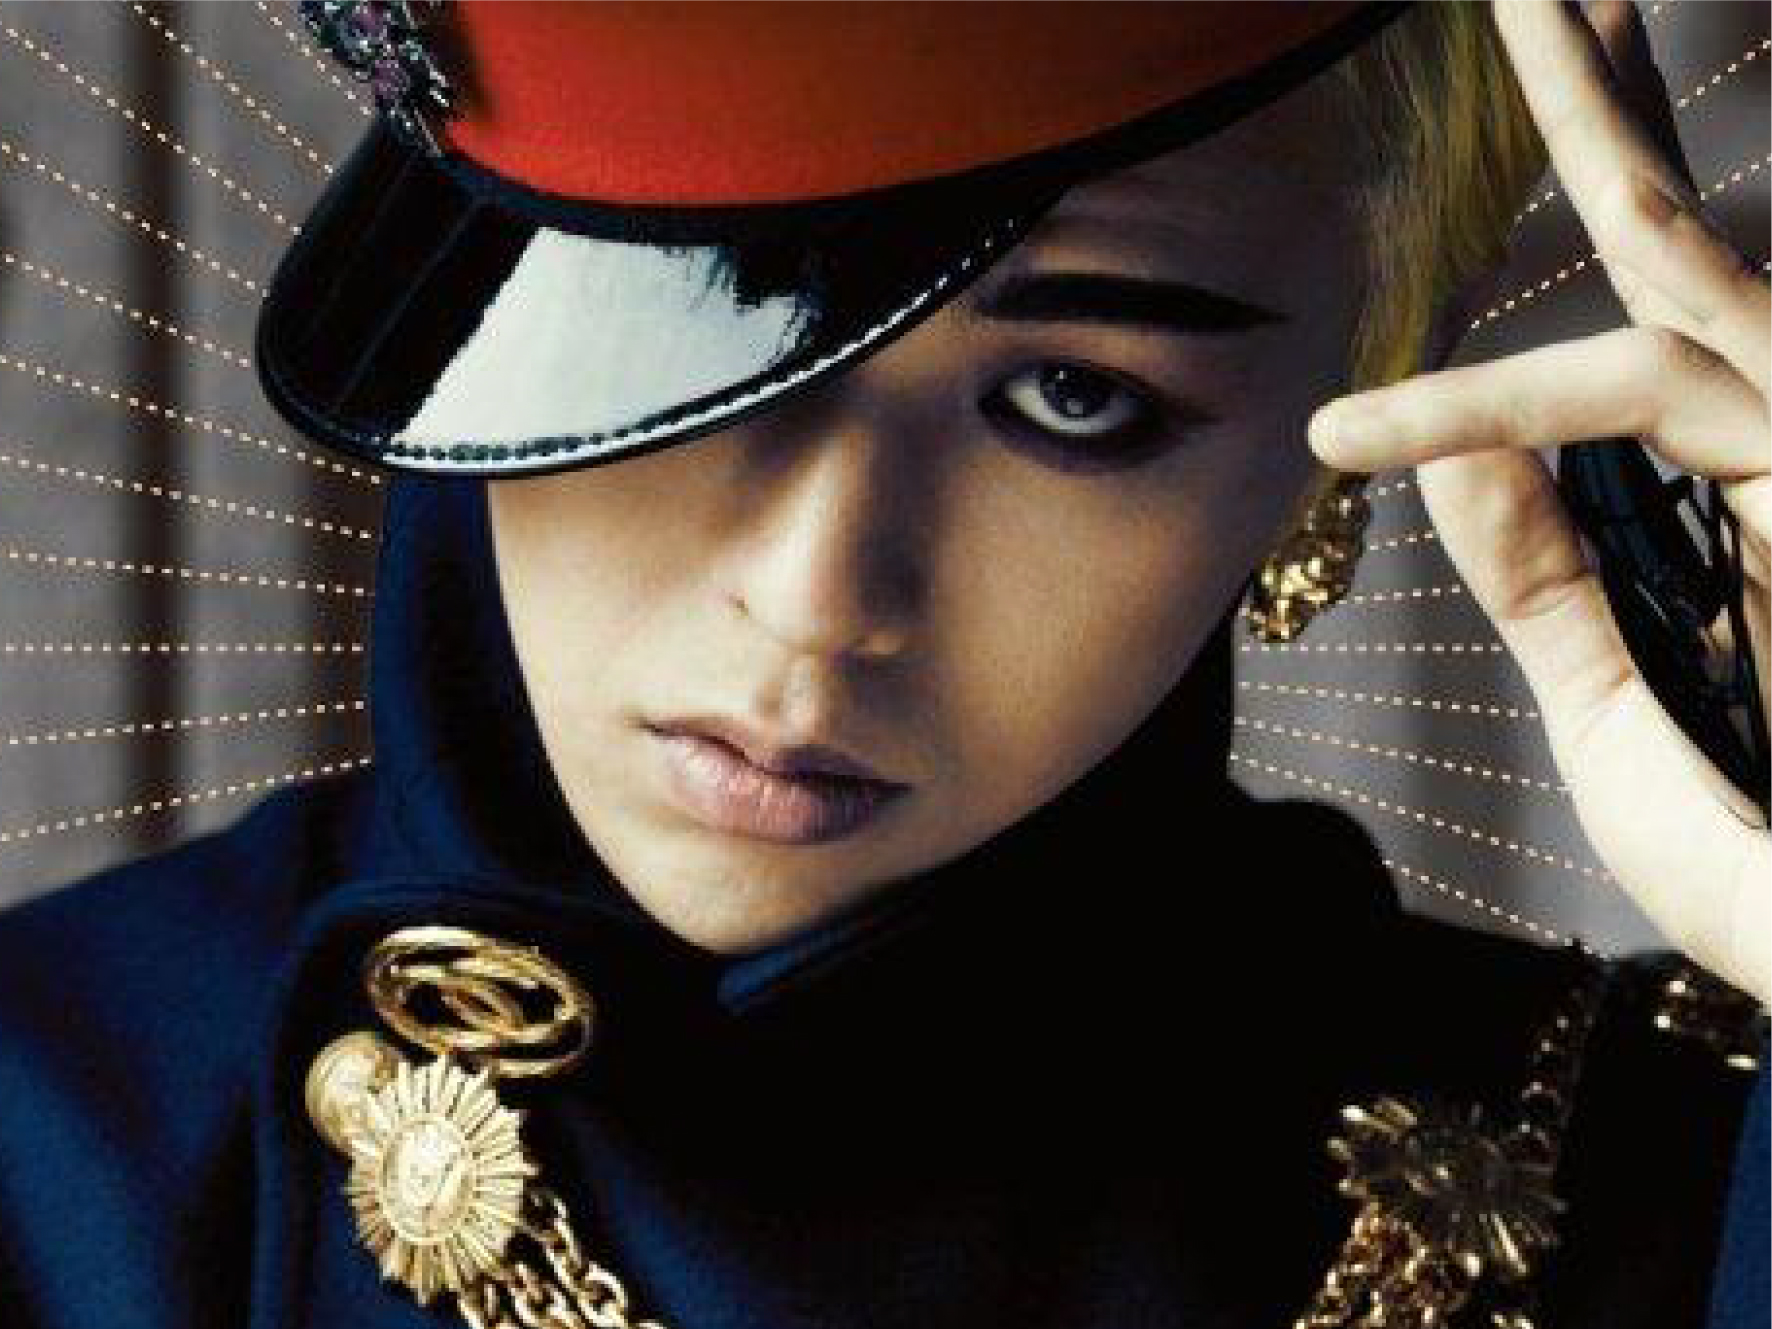 Dragon BigBang hip hop kpop korean kpop pop 77 wallpaper